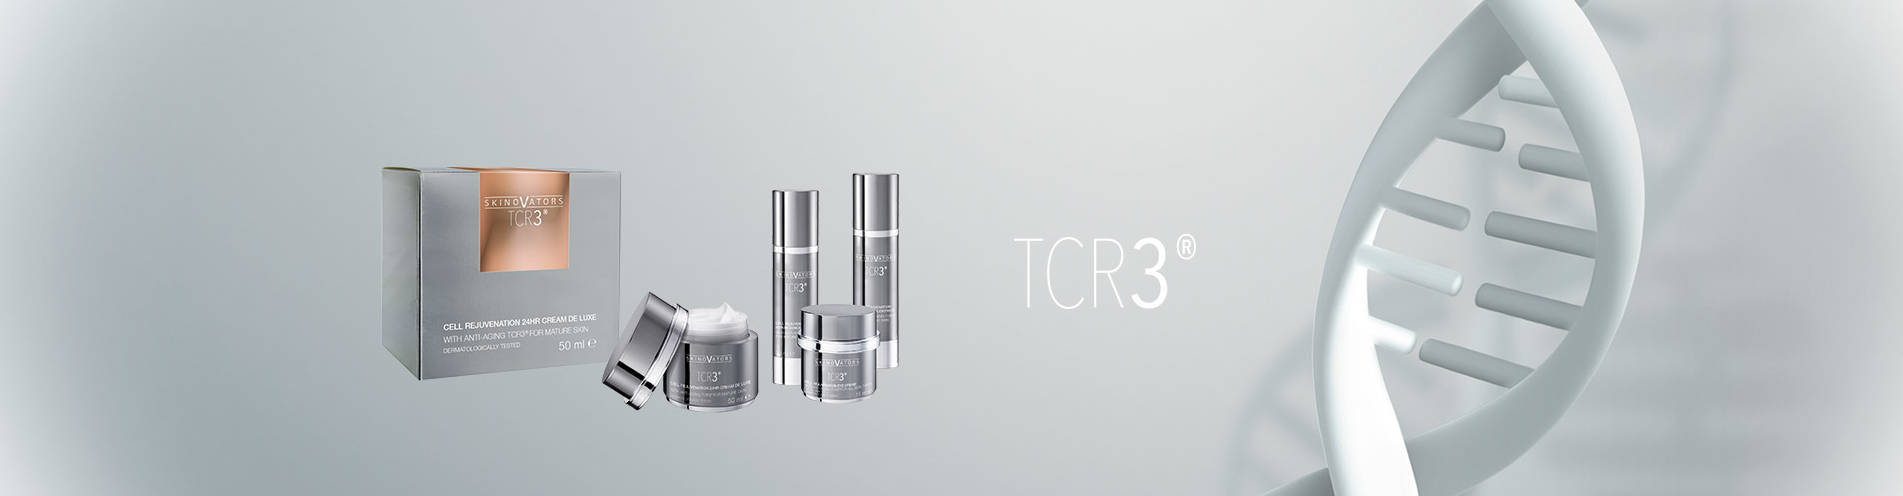 Your brand name or label on TCR3 skin care Private Label Cosmetics German Manufacturer